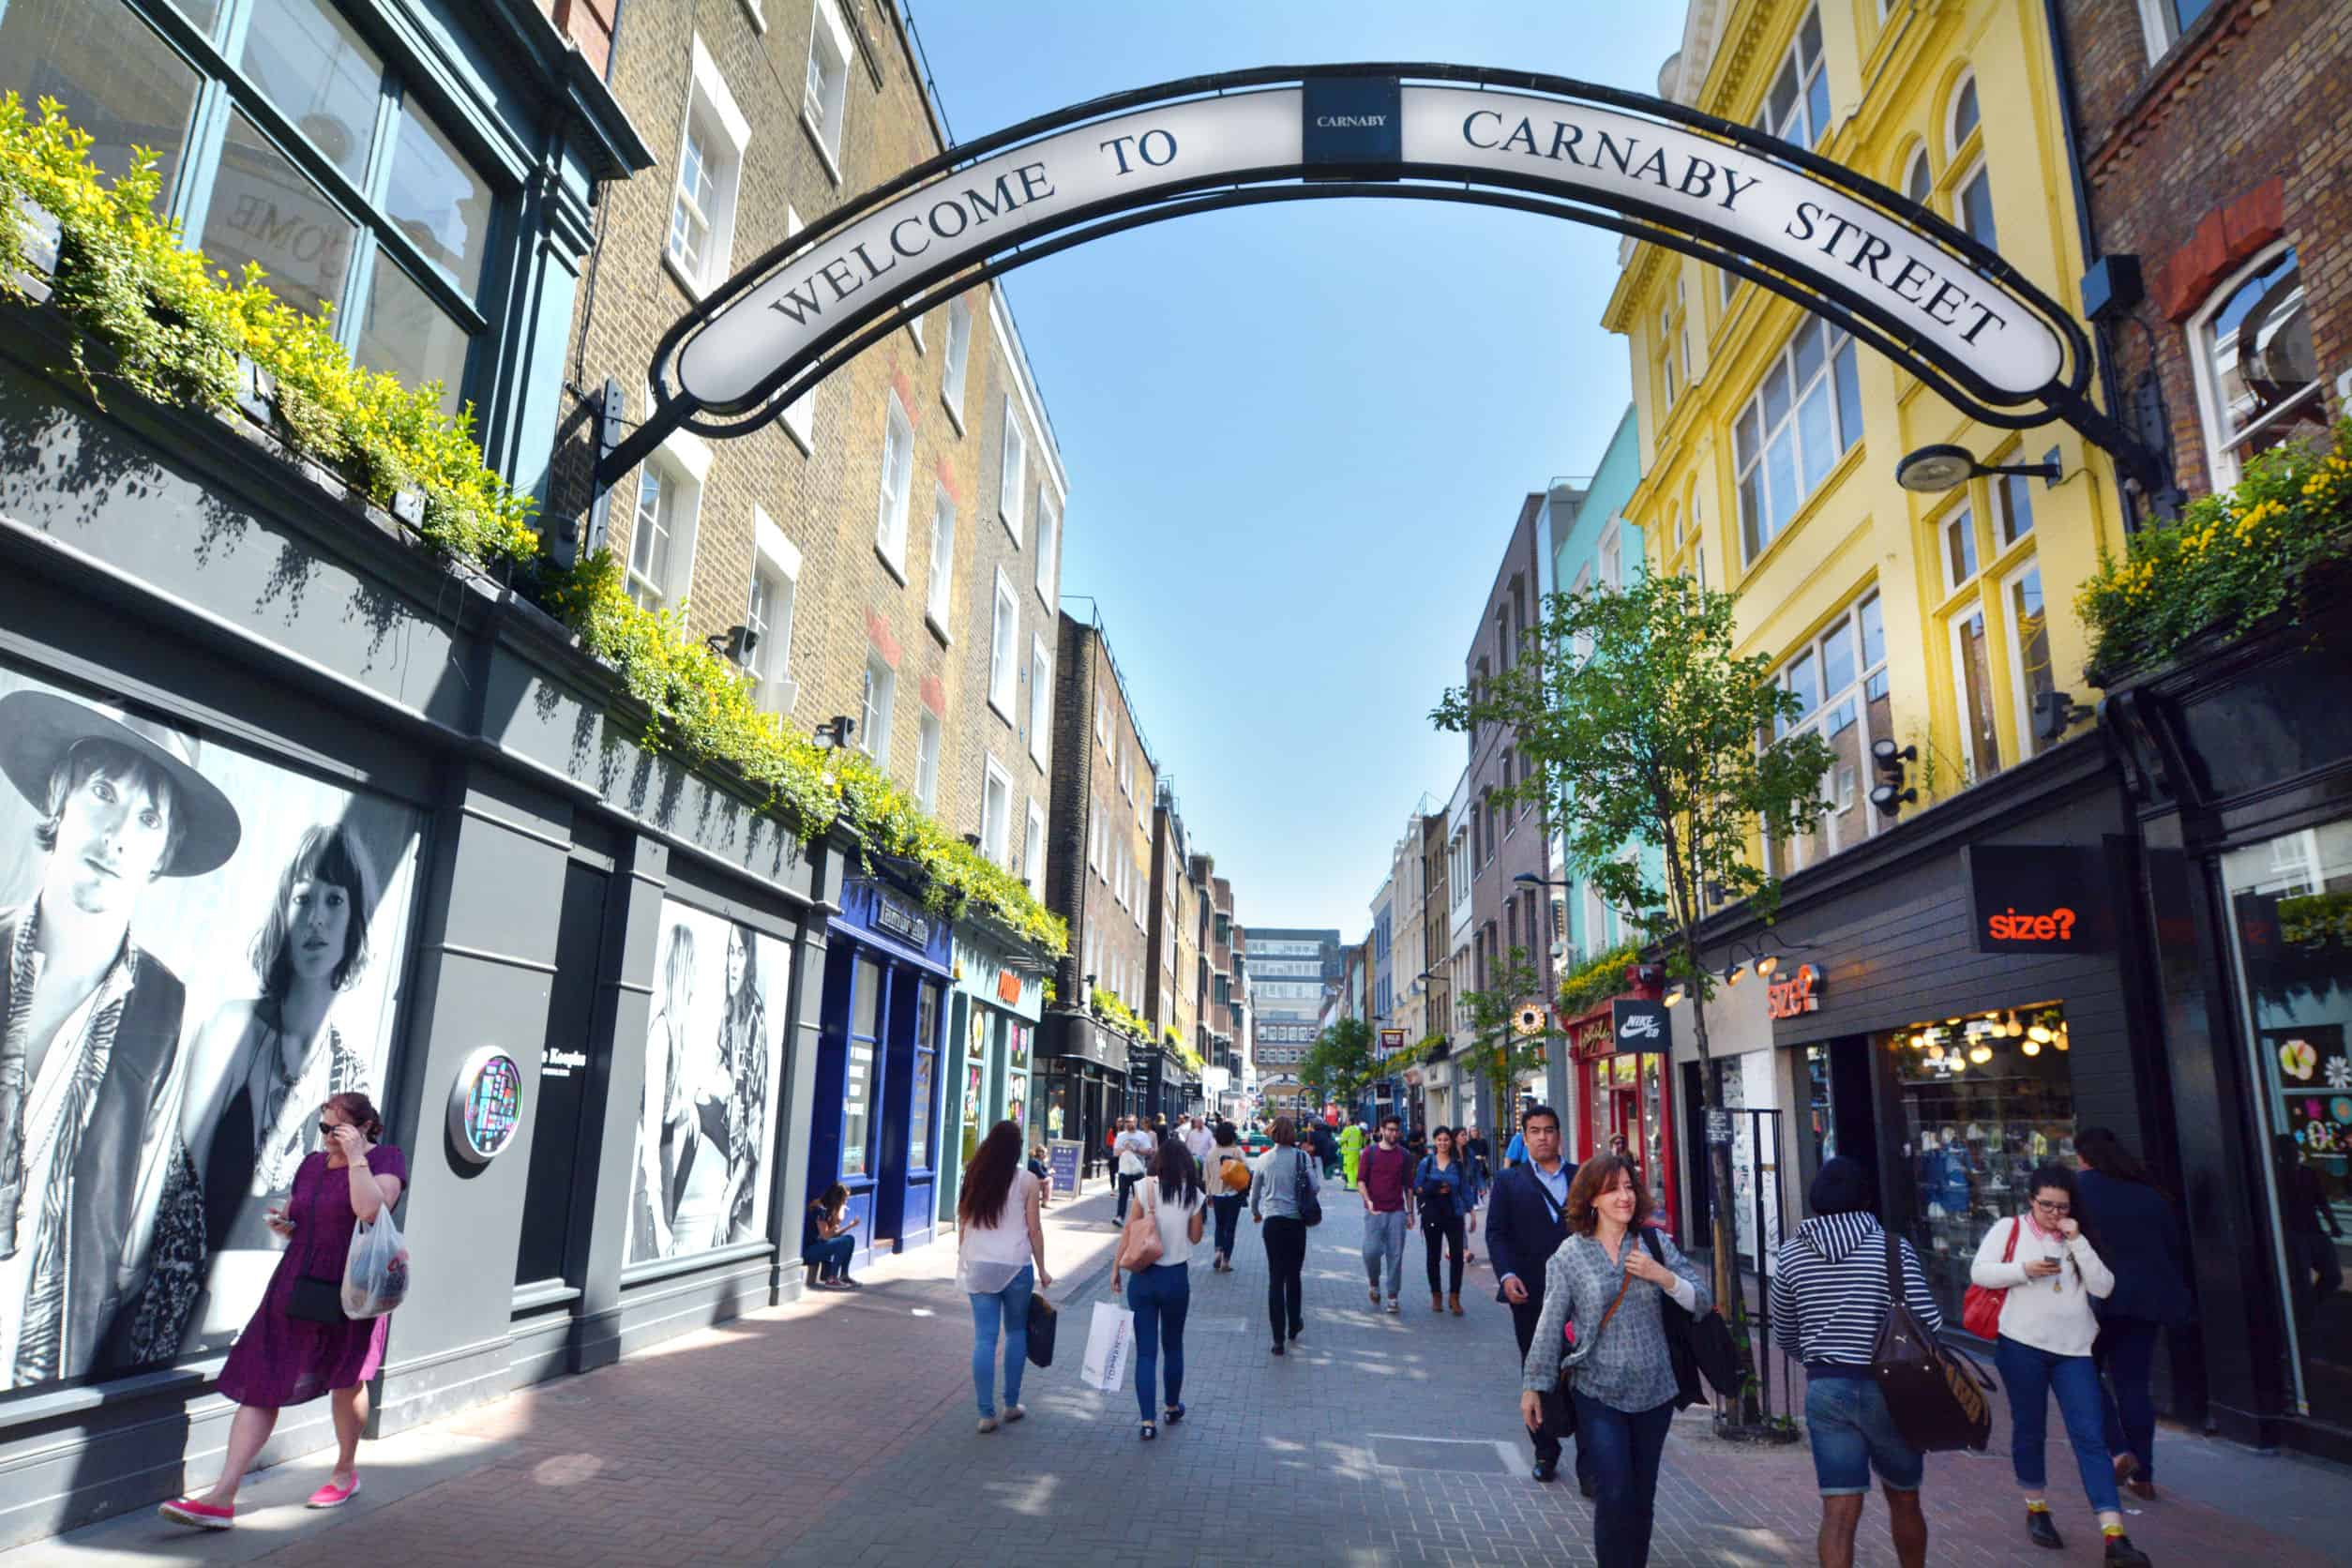 london uk.carnaby street is a popular pedestrianised shopping street in the city of westminster, london